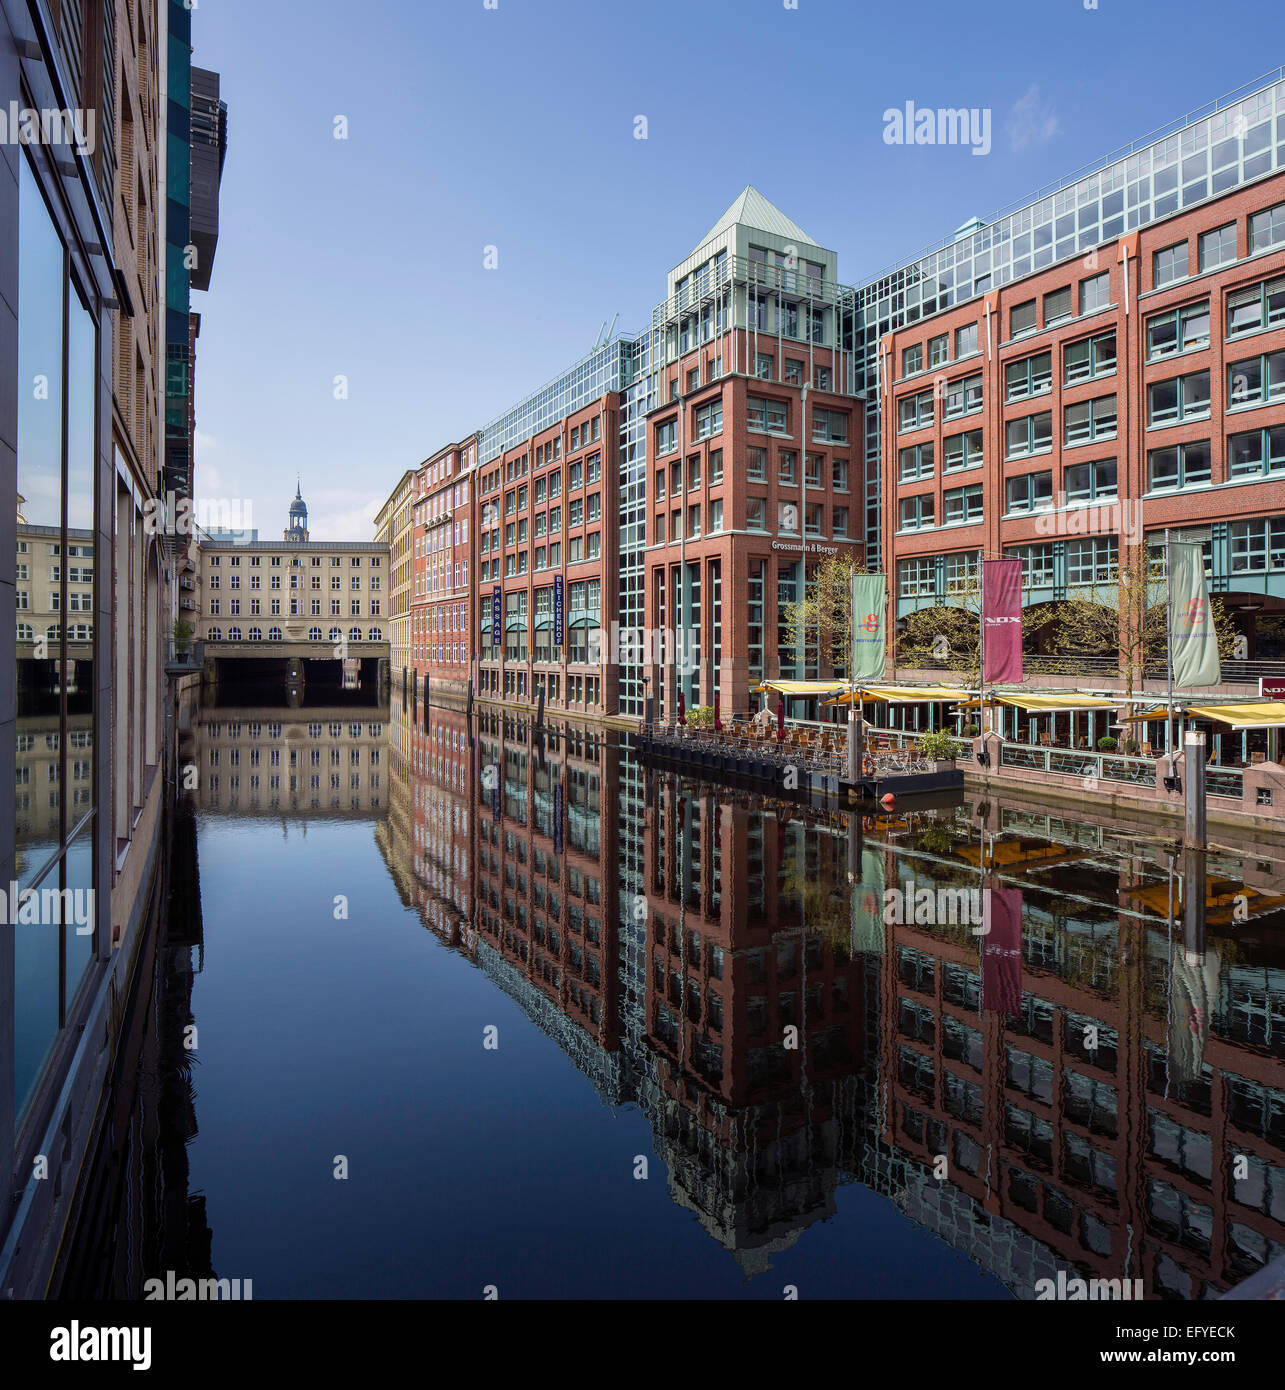 Bleichenhof, office and commercial building, Hamburg, Germany Stock Photo